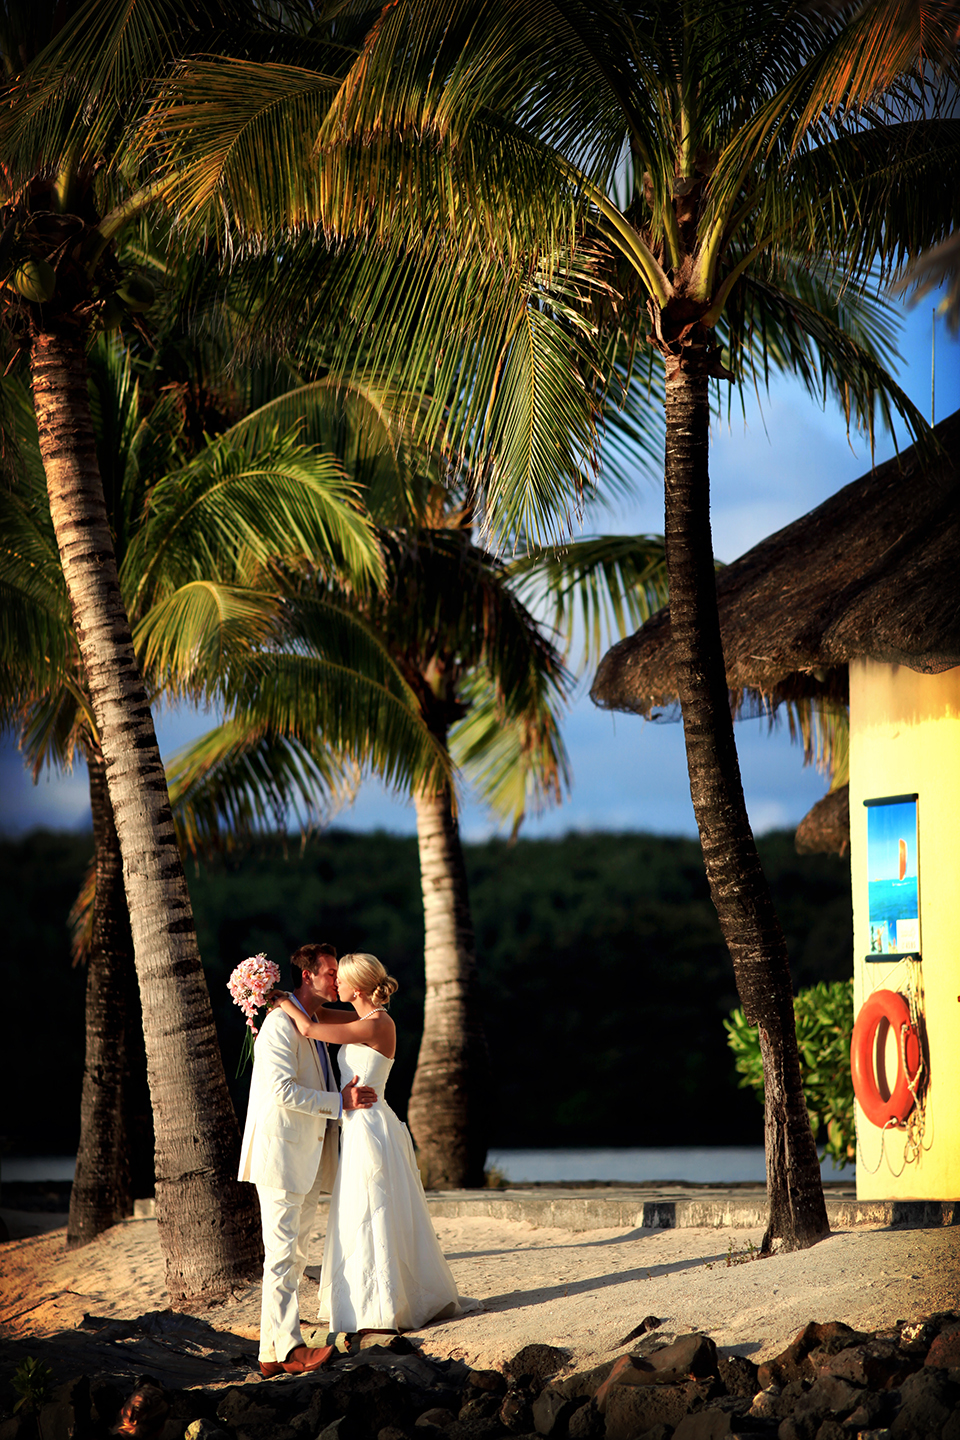 Mauritius_wedding_photographers_beachcomber_destination_wedding_Photography (133).jpg